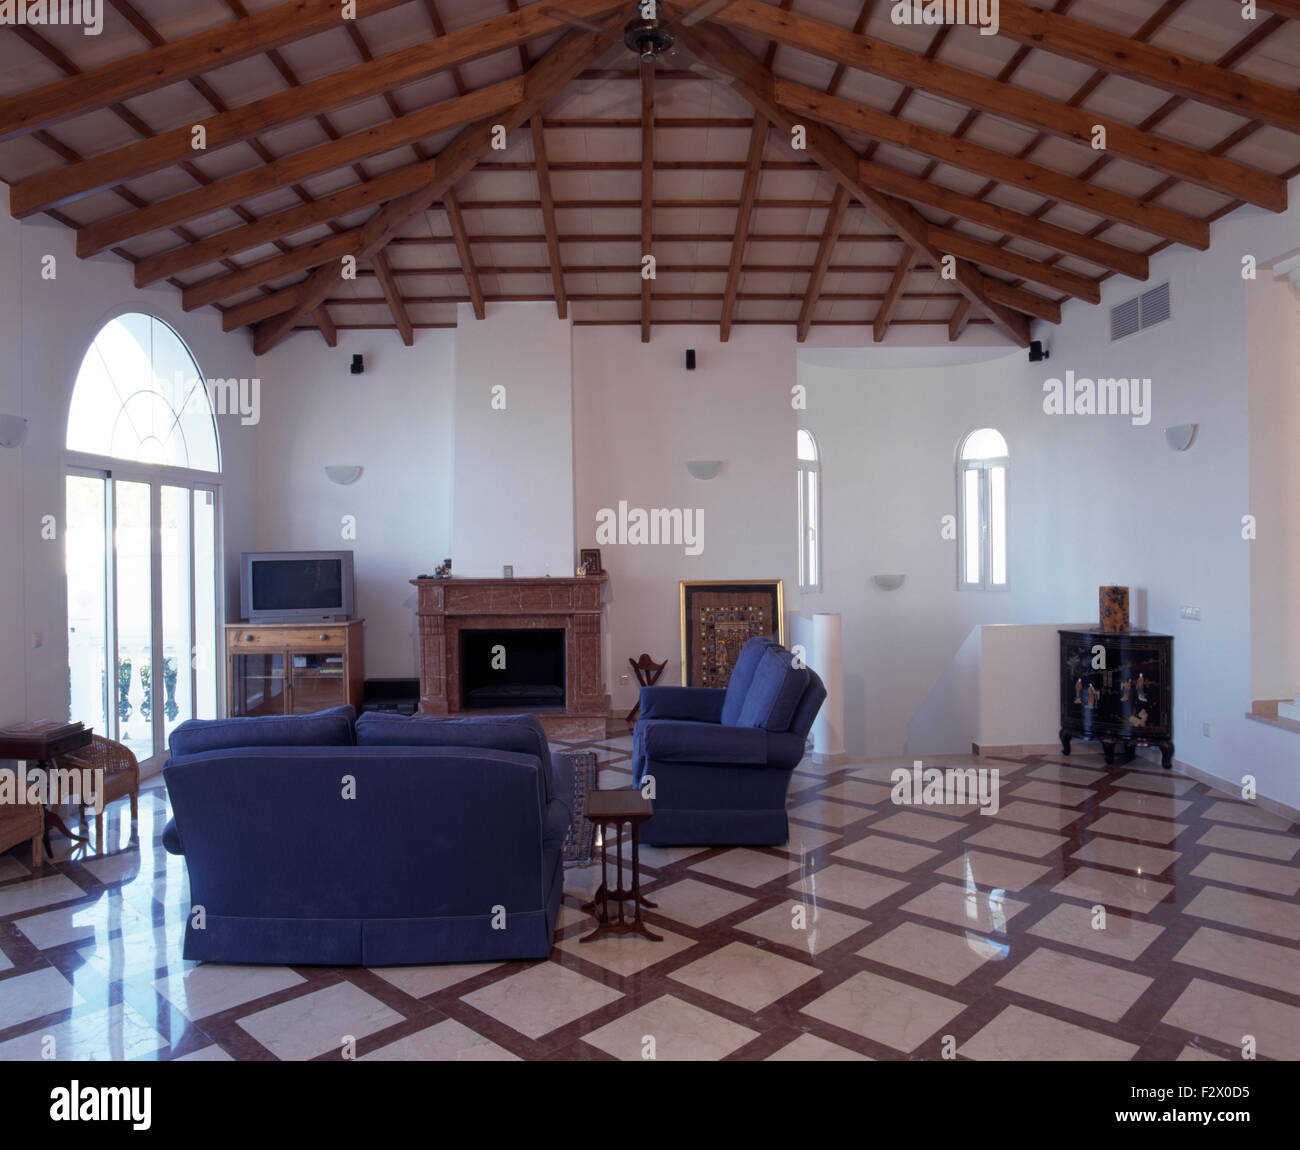 Ceramic Tiled Floor And Ceiling With Criss Cross Beams In